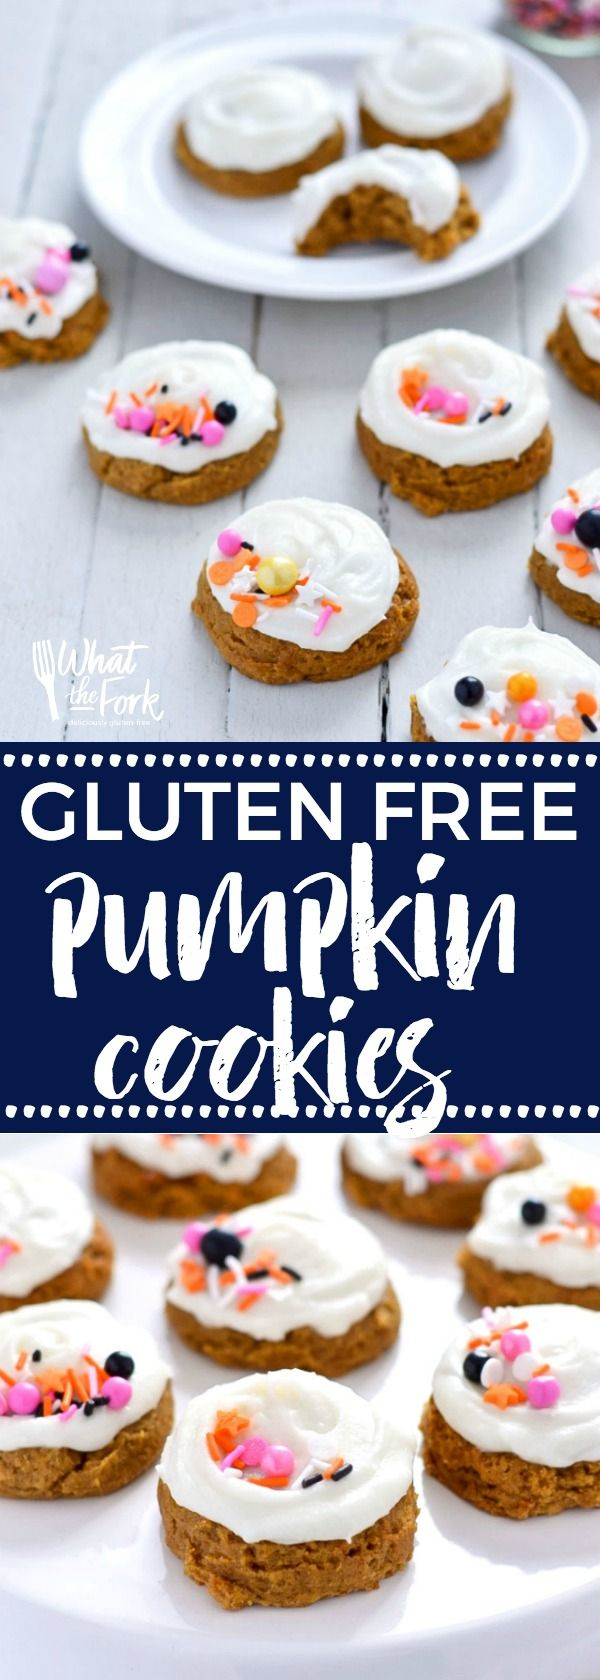 Gluten Free Pumpkin Cookies with Cream Cheese Frosting (dairy free option) are pillowy soft and melt in your mouth. Easy gluten free cookie recipe from @whattheforkblog | whattheforkfoodblog.com | gluten free dairy free pumpkin cookies | soft frosted pump